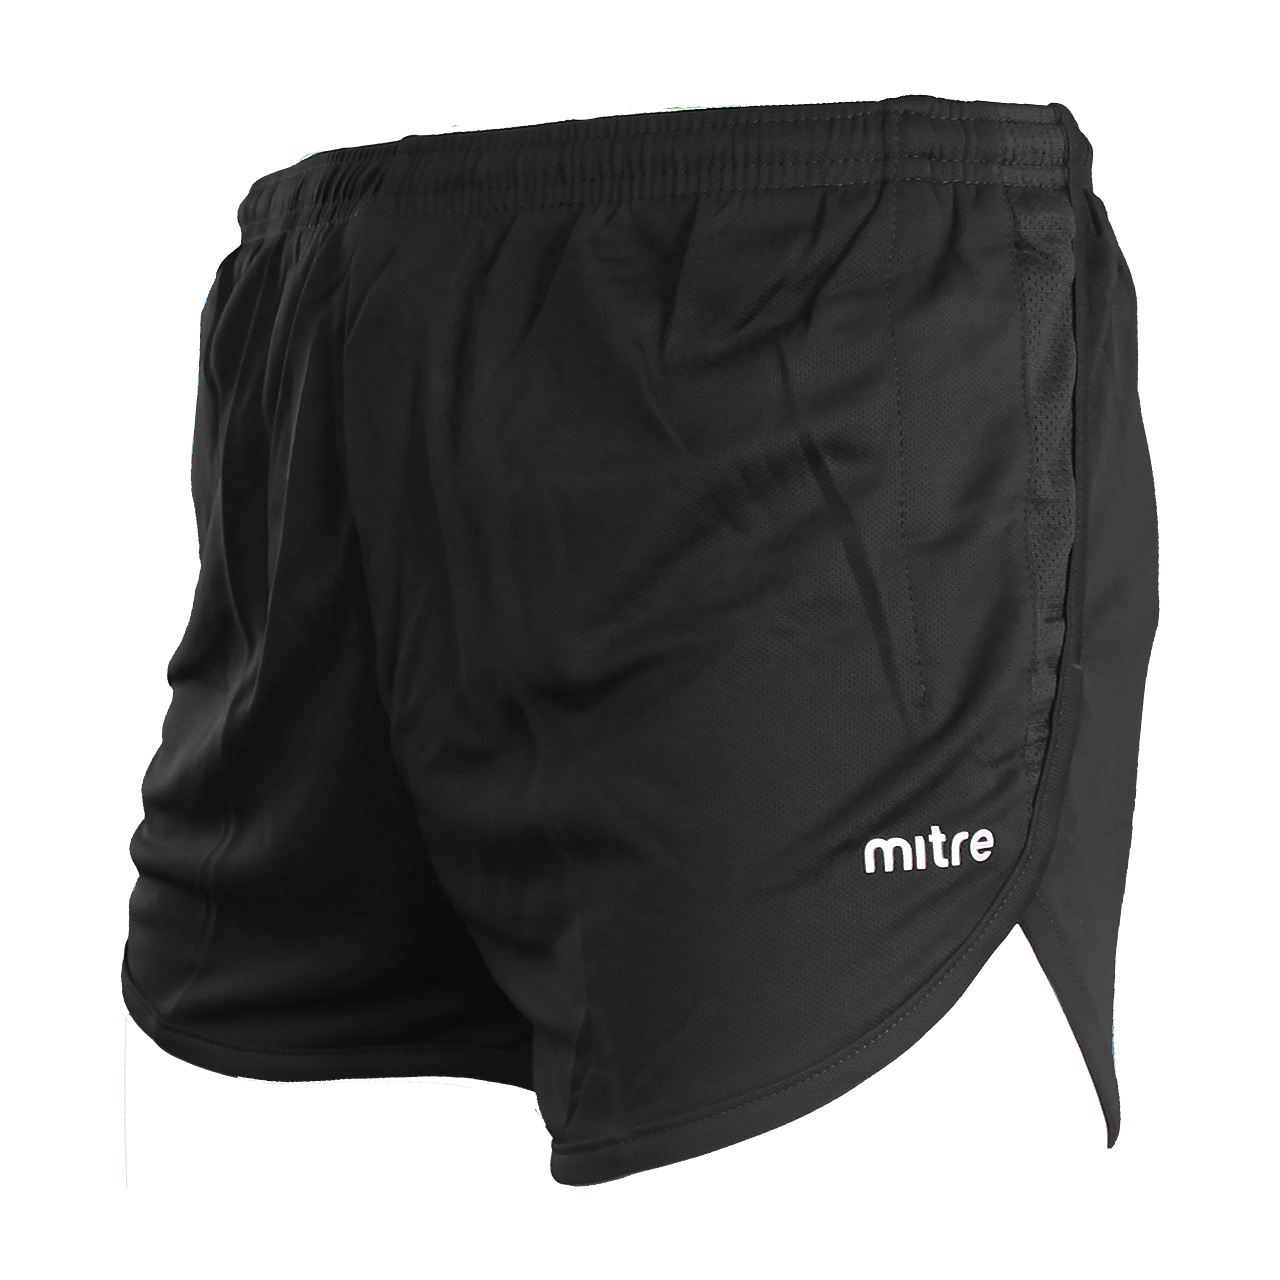 Maxicool Split Shorts [MRS401BLK]